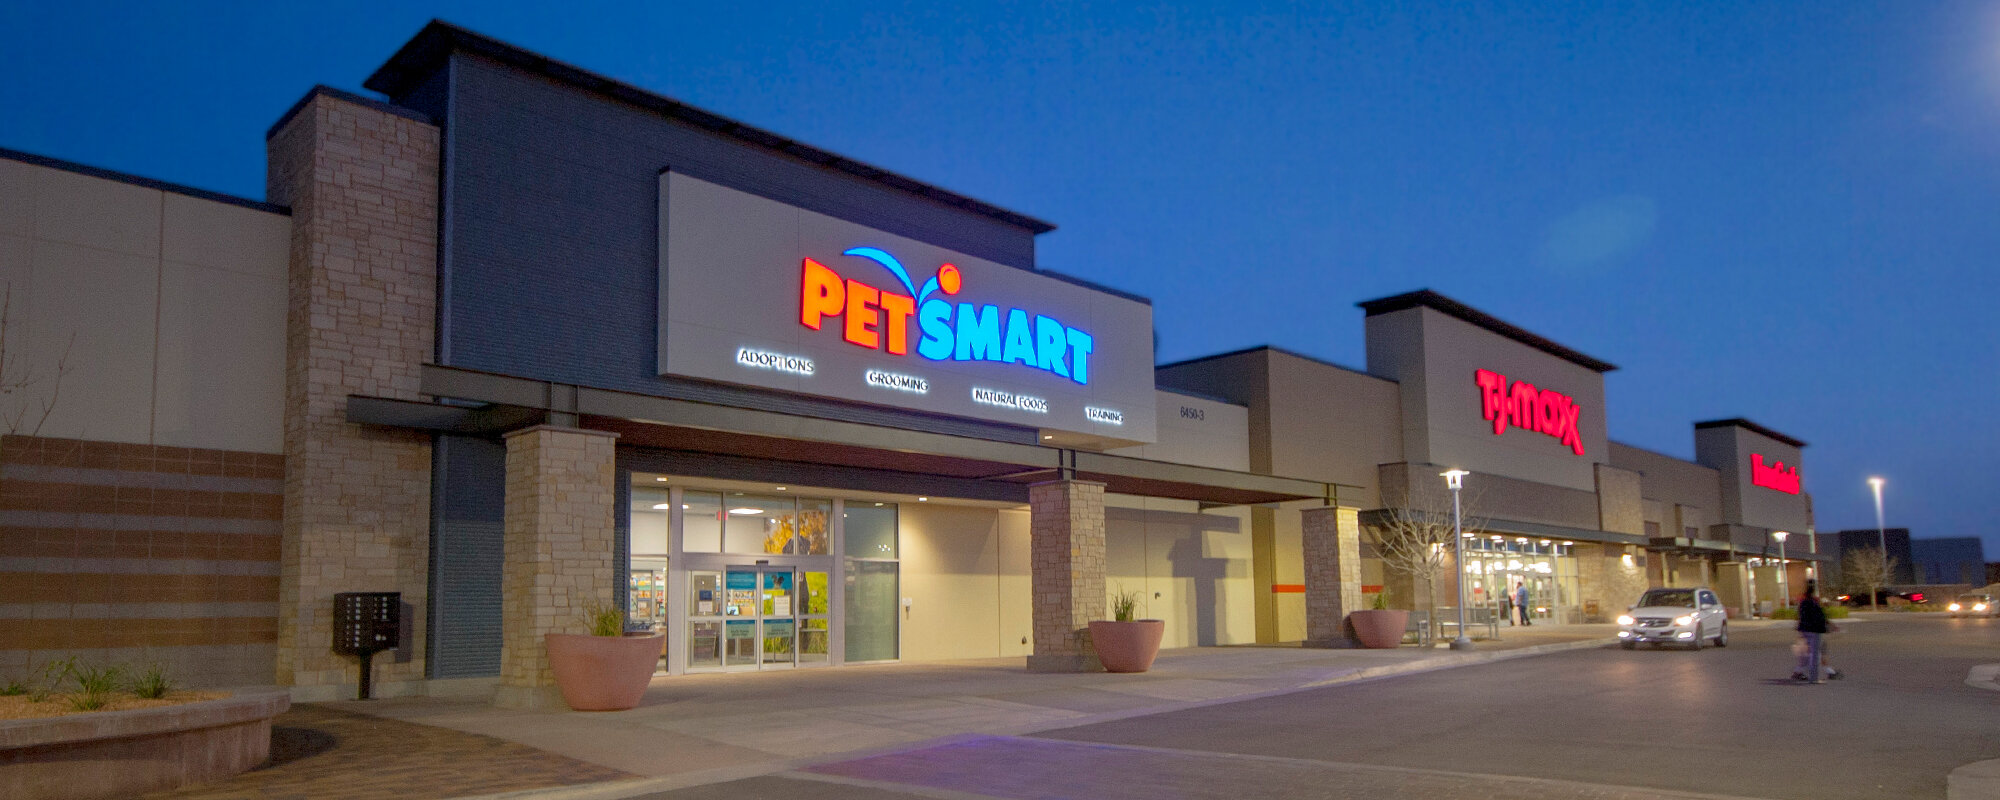 The latest news about leasing retail space in El Paso, Texas